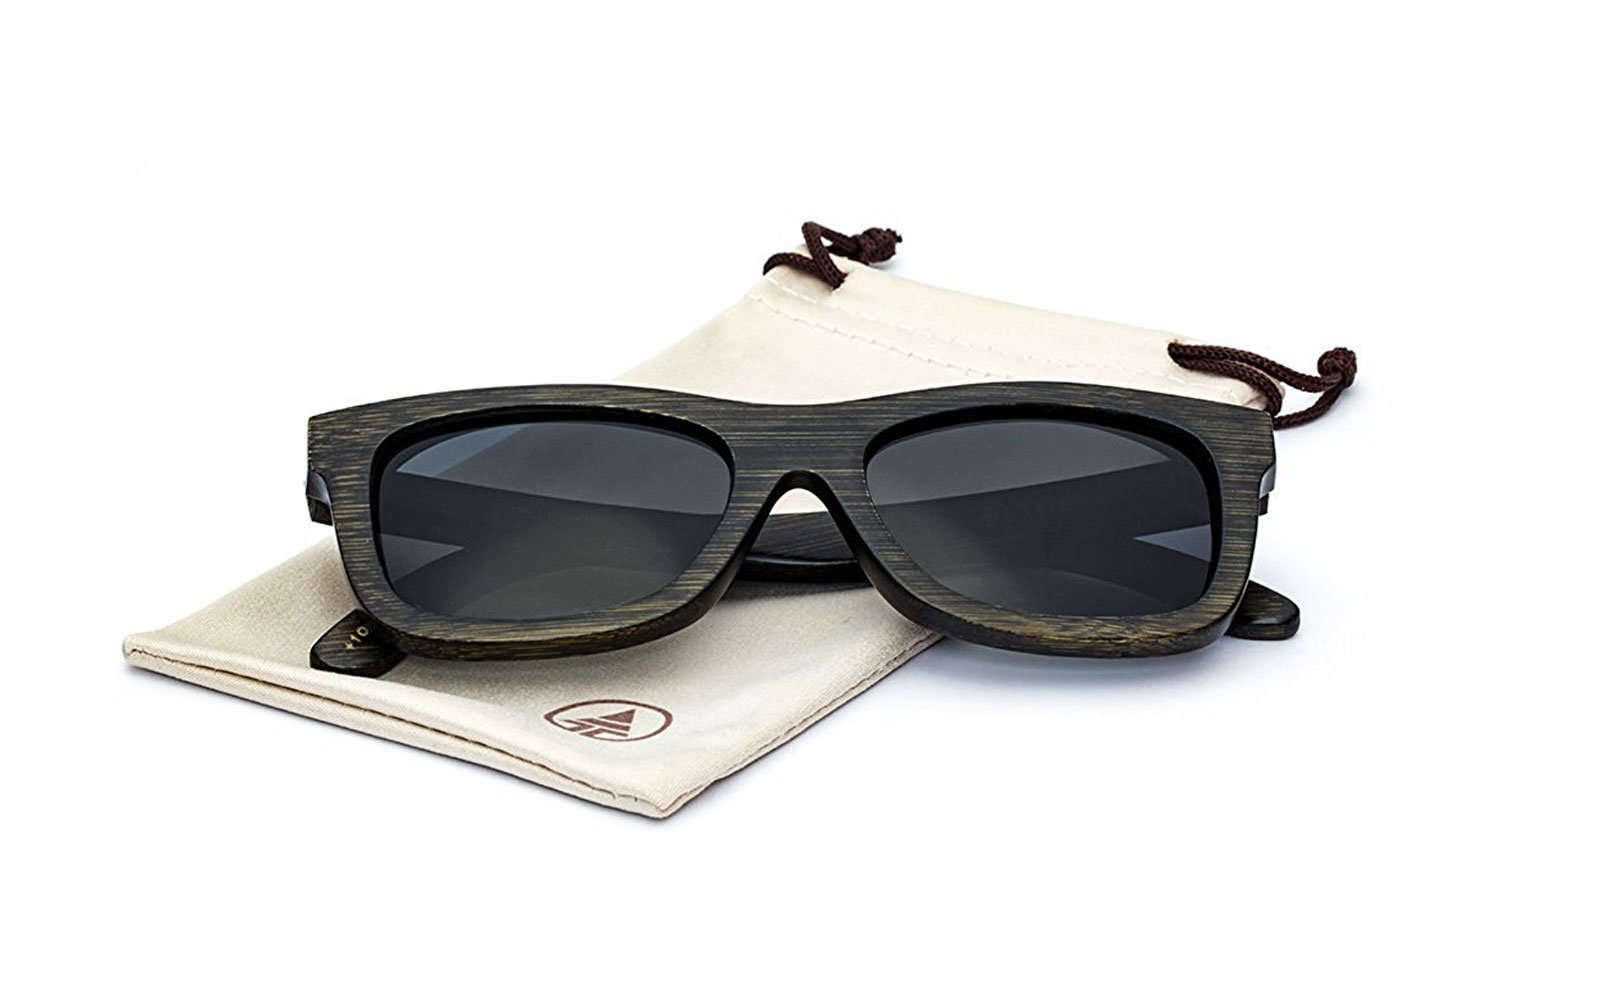 Sunglasses Travel With Leisure